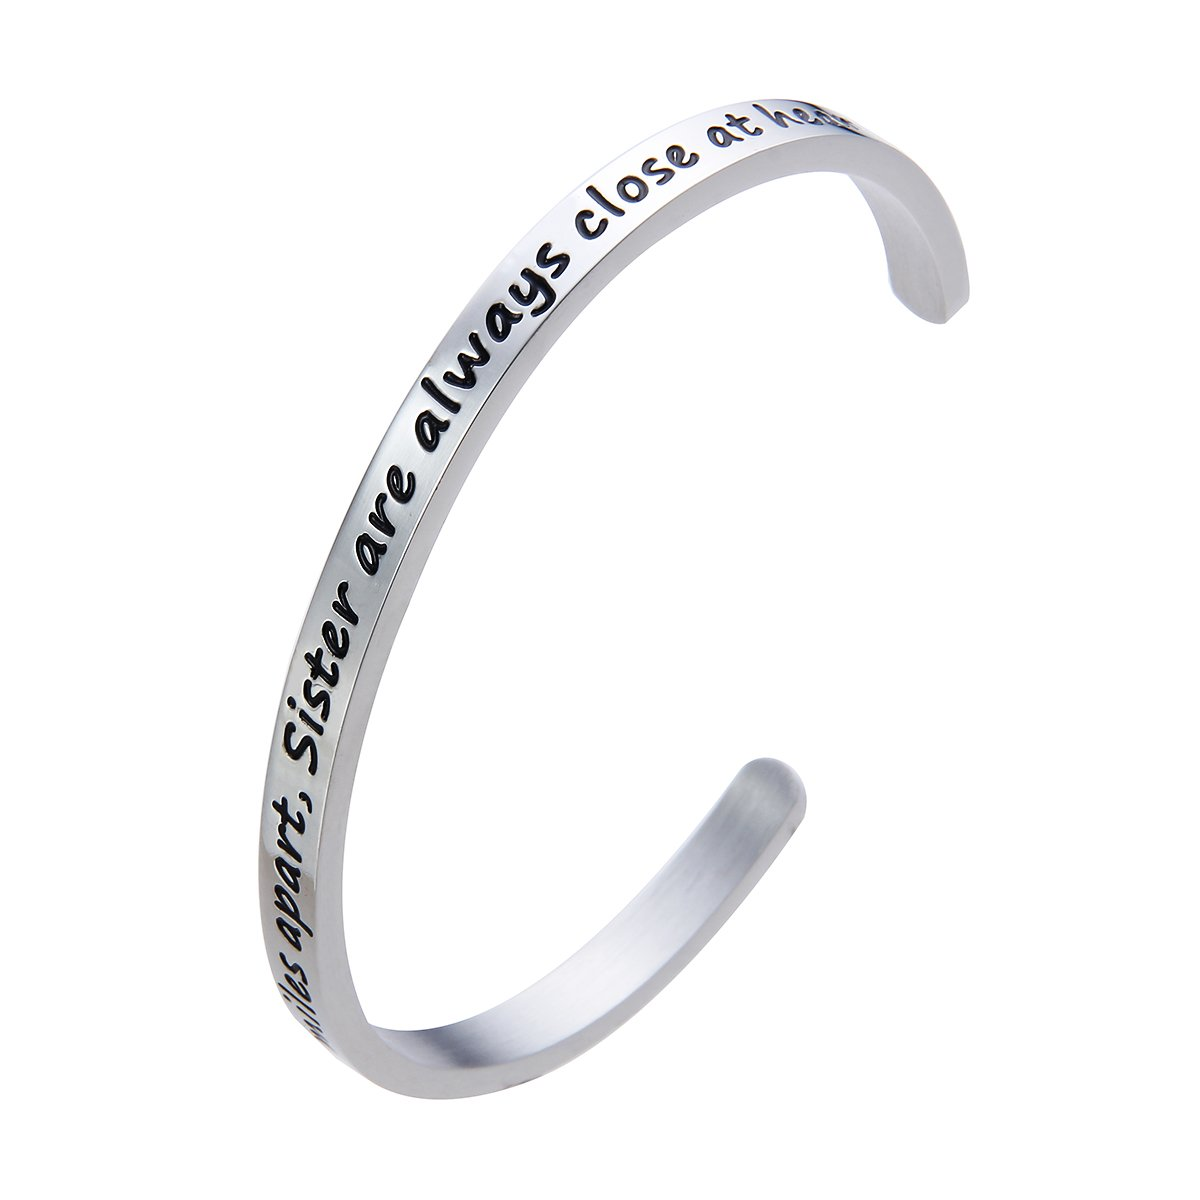 Meibai Maid of Honor Bracelet Stainless Steel message Cuff Bangle Wedding Gift for Bridesmaid Sister Chenzhou Meibai Jewelry Co. Ltd